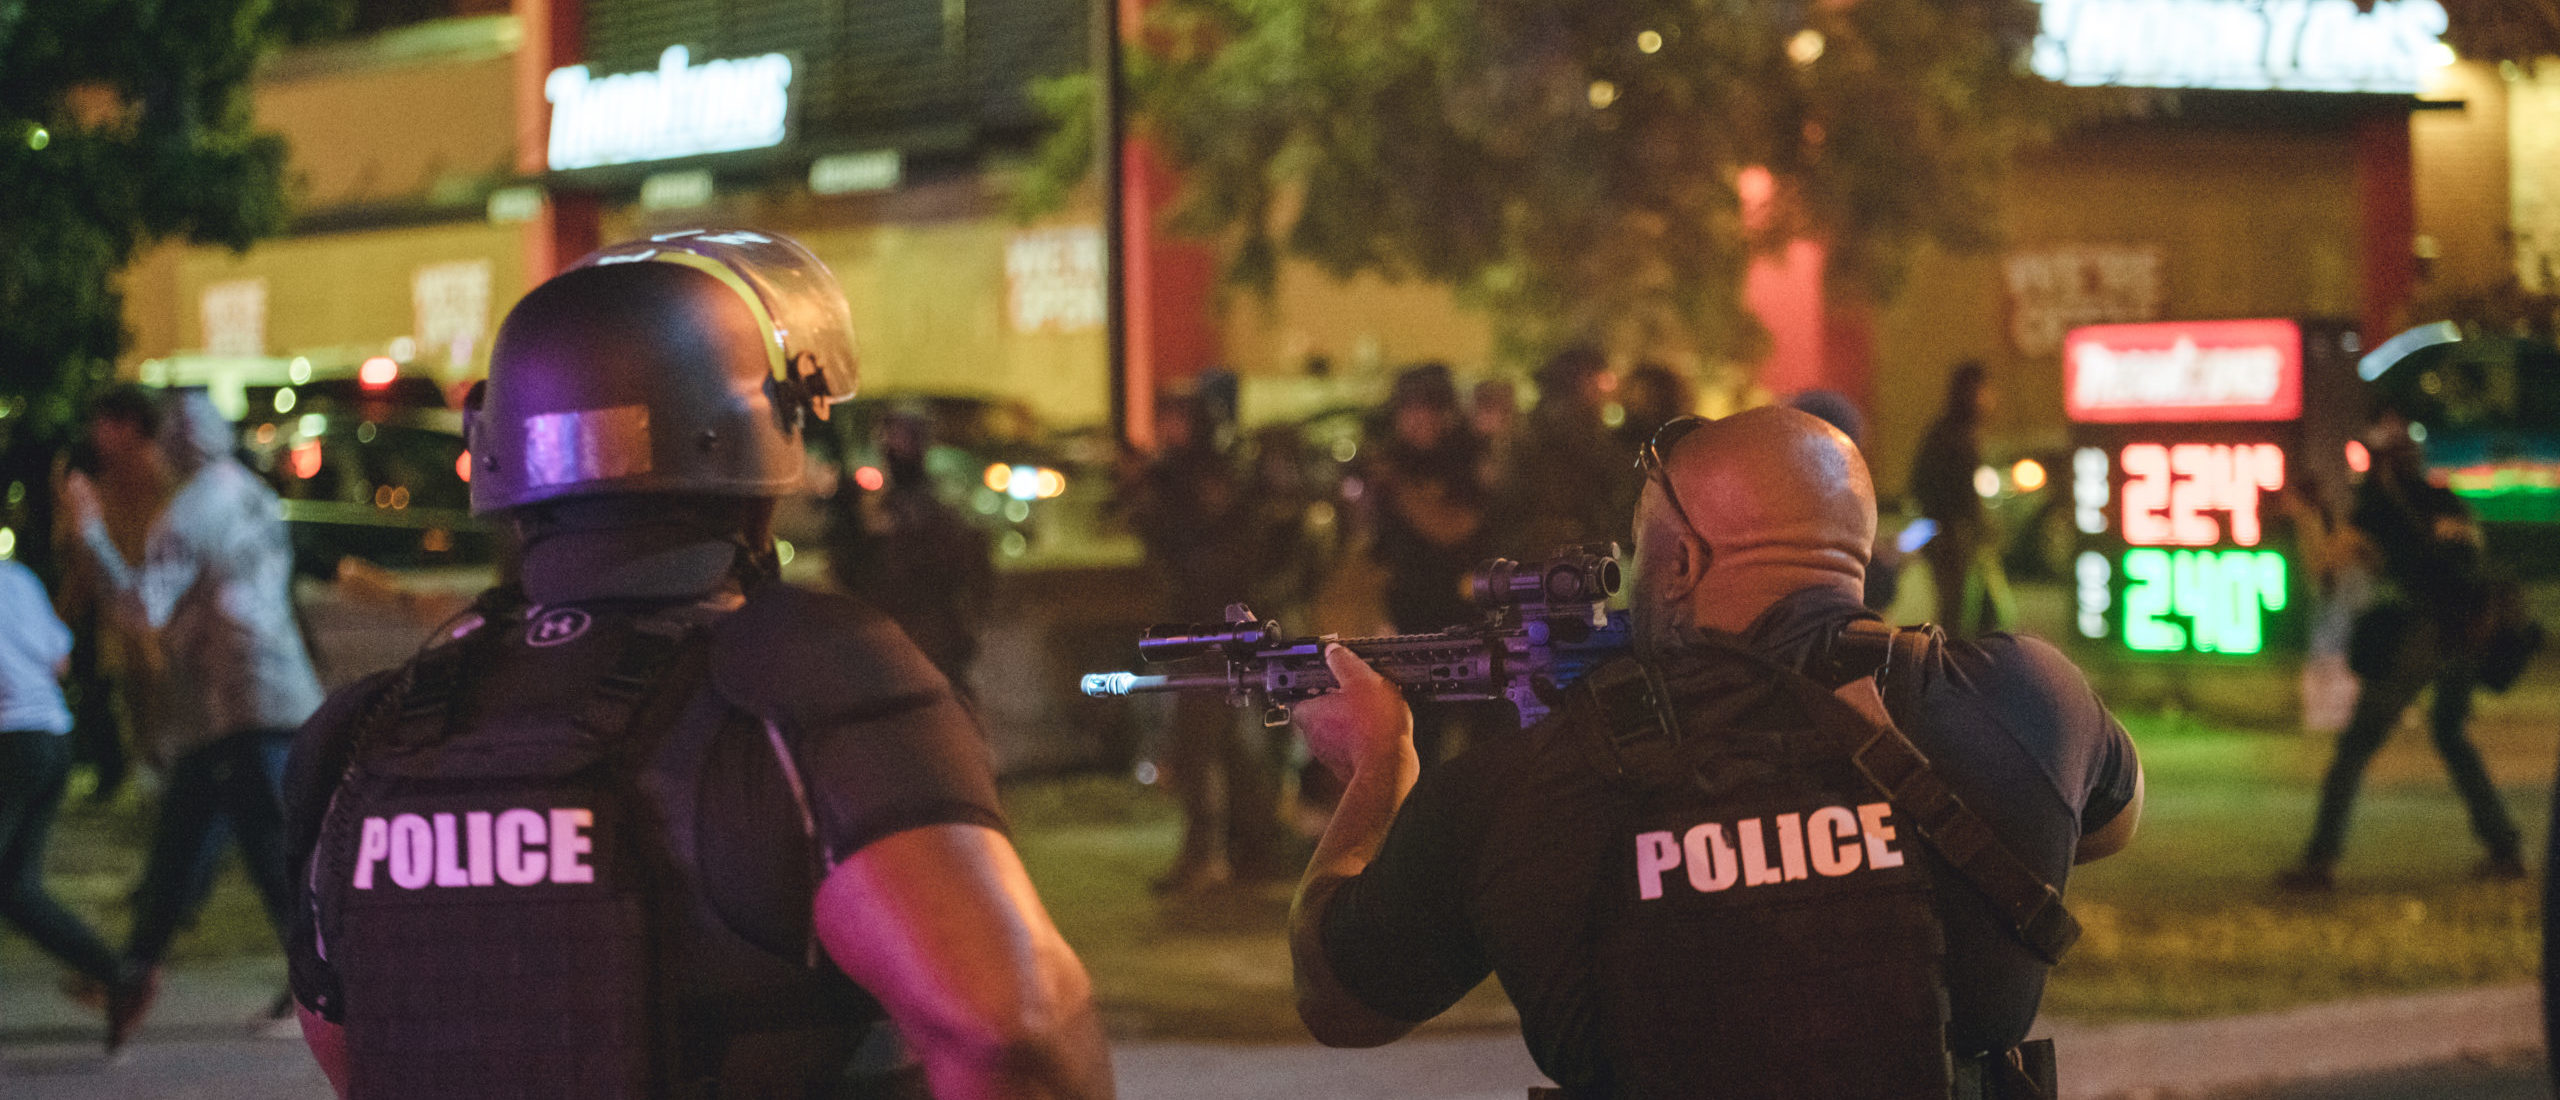 LOUISVILLE, KY - SEPTEMBER 23: A police officer takes aim at protesters shortly after shots are fired at police, resulting in two injured officers, on September 23, 2020 in Louisville, Kentucky. Protesters took to streets after Kentucky Attorney General Daniel Cameron's announcement to indict only one of the three LMPD officers involved in the death of Breonna Taylor during a no-knock raid executed on her apartment on March 13, 2020. (Photo by Jon Cherry/Getty Images)